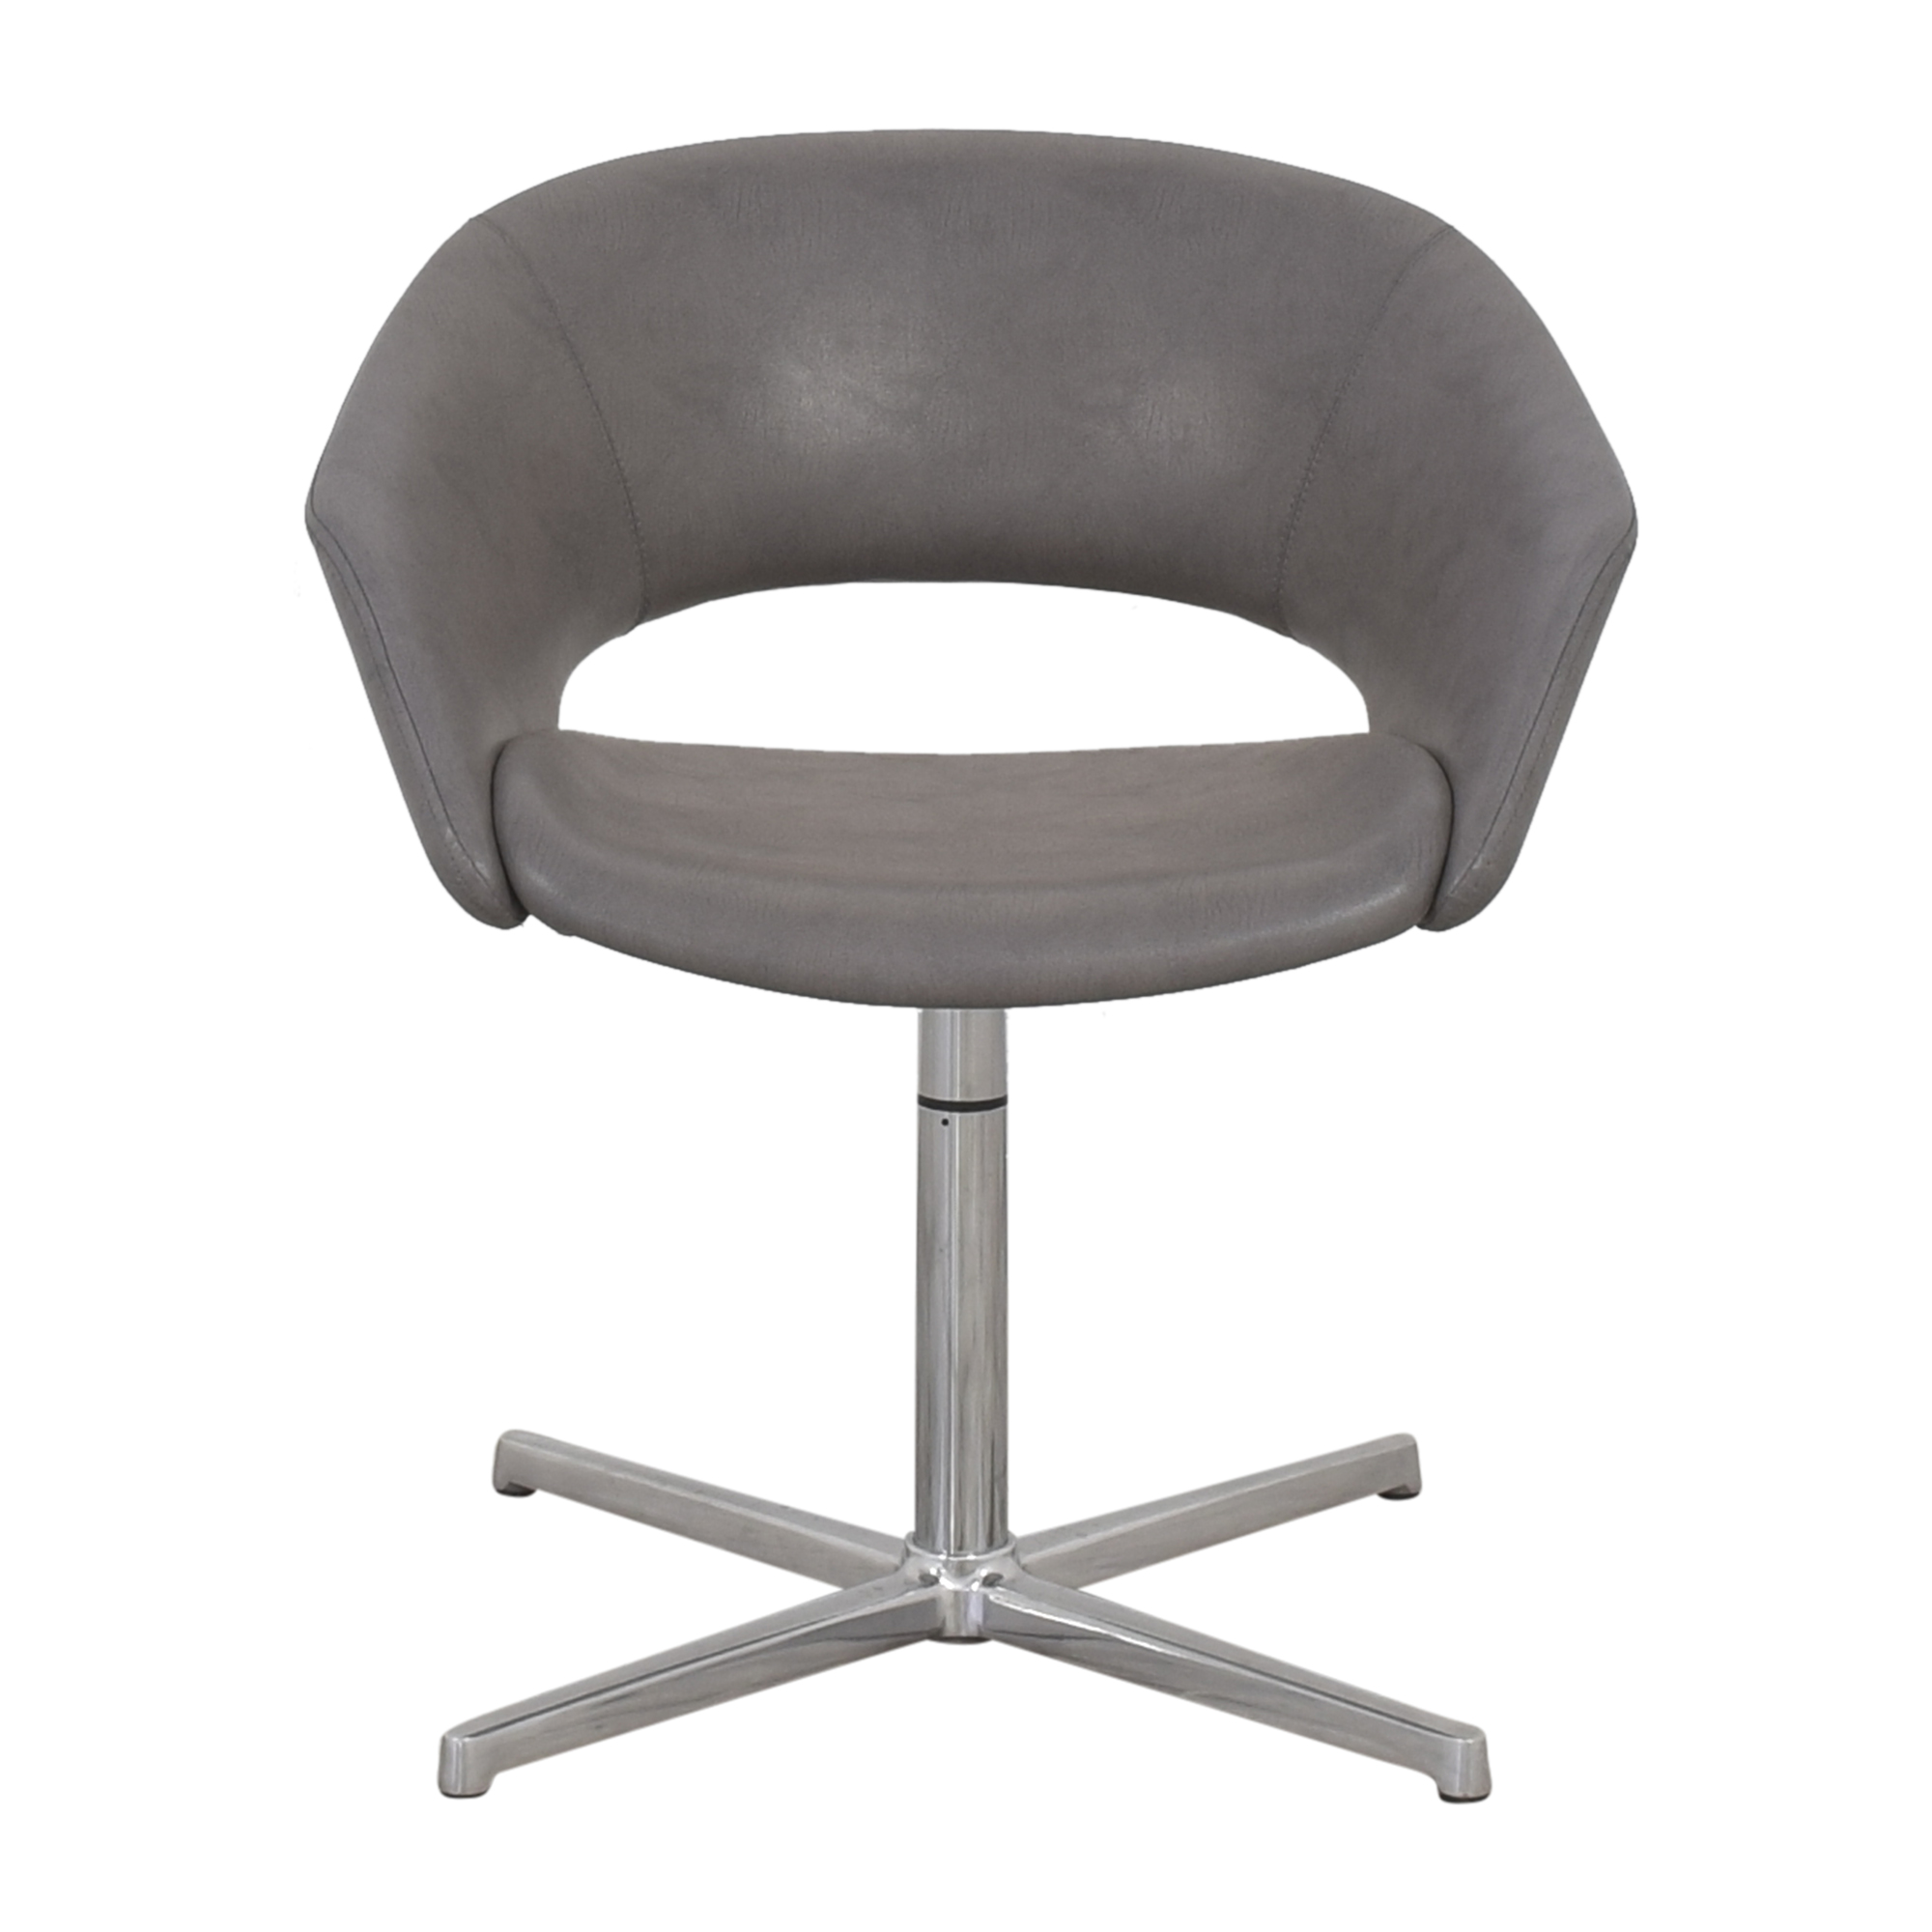 Leland International Leland Mod Pedestal Swivel Chair nyc